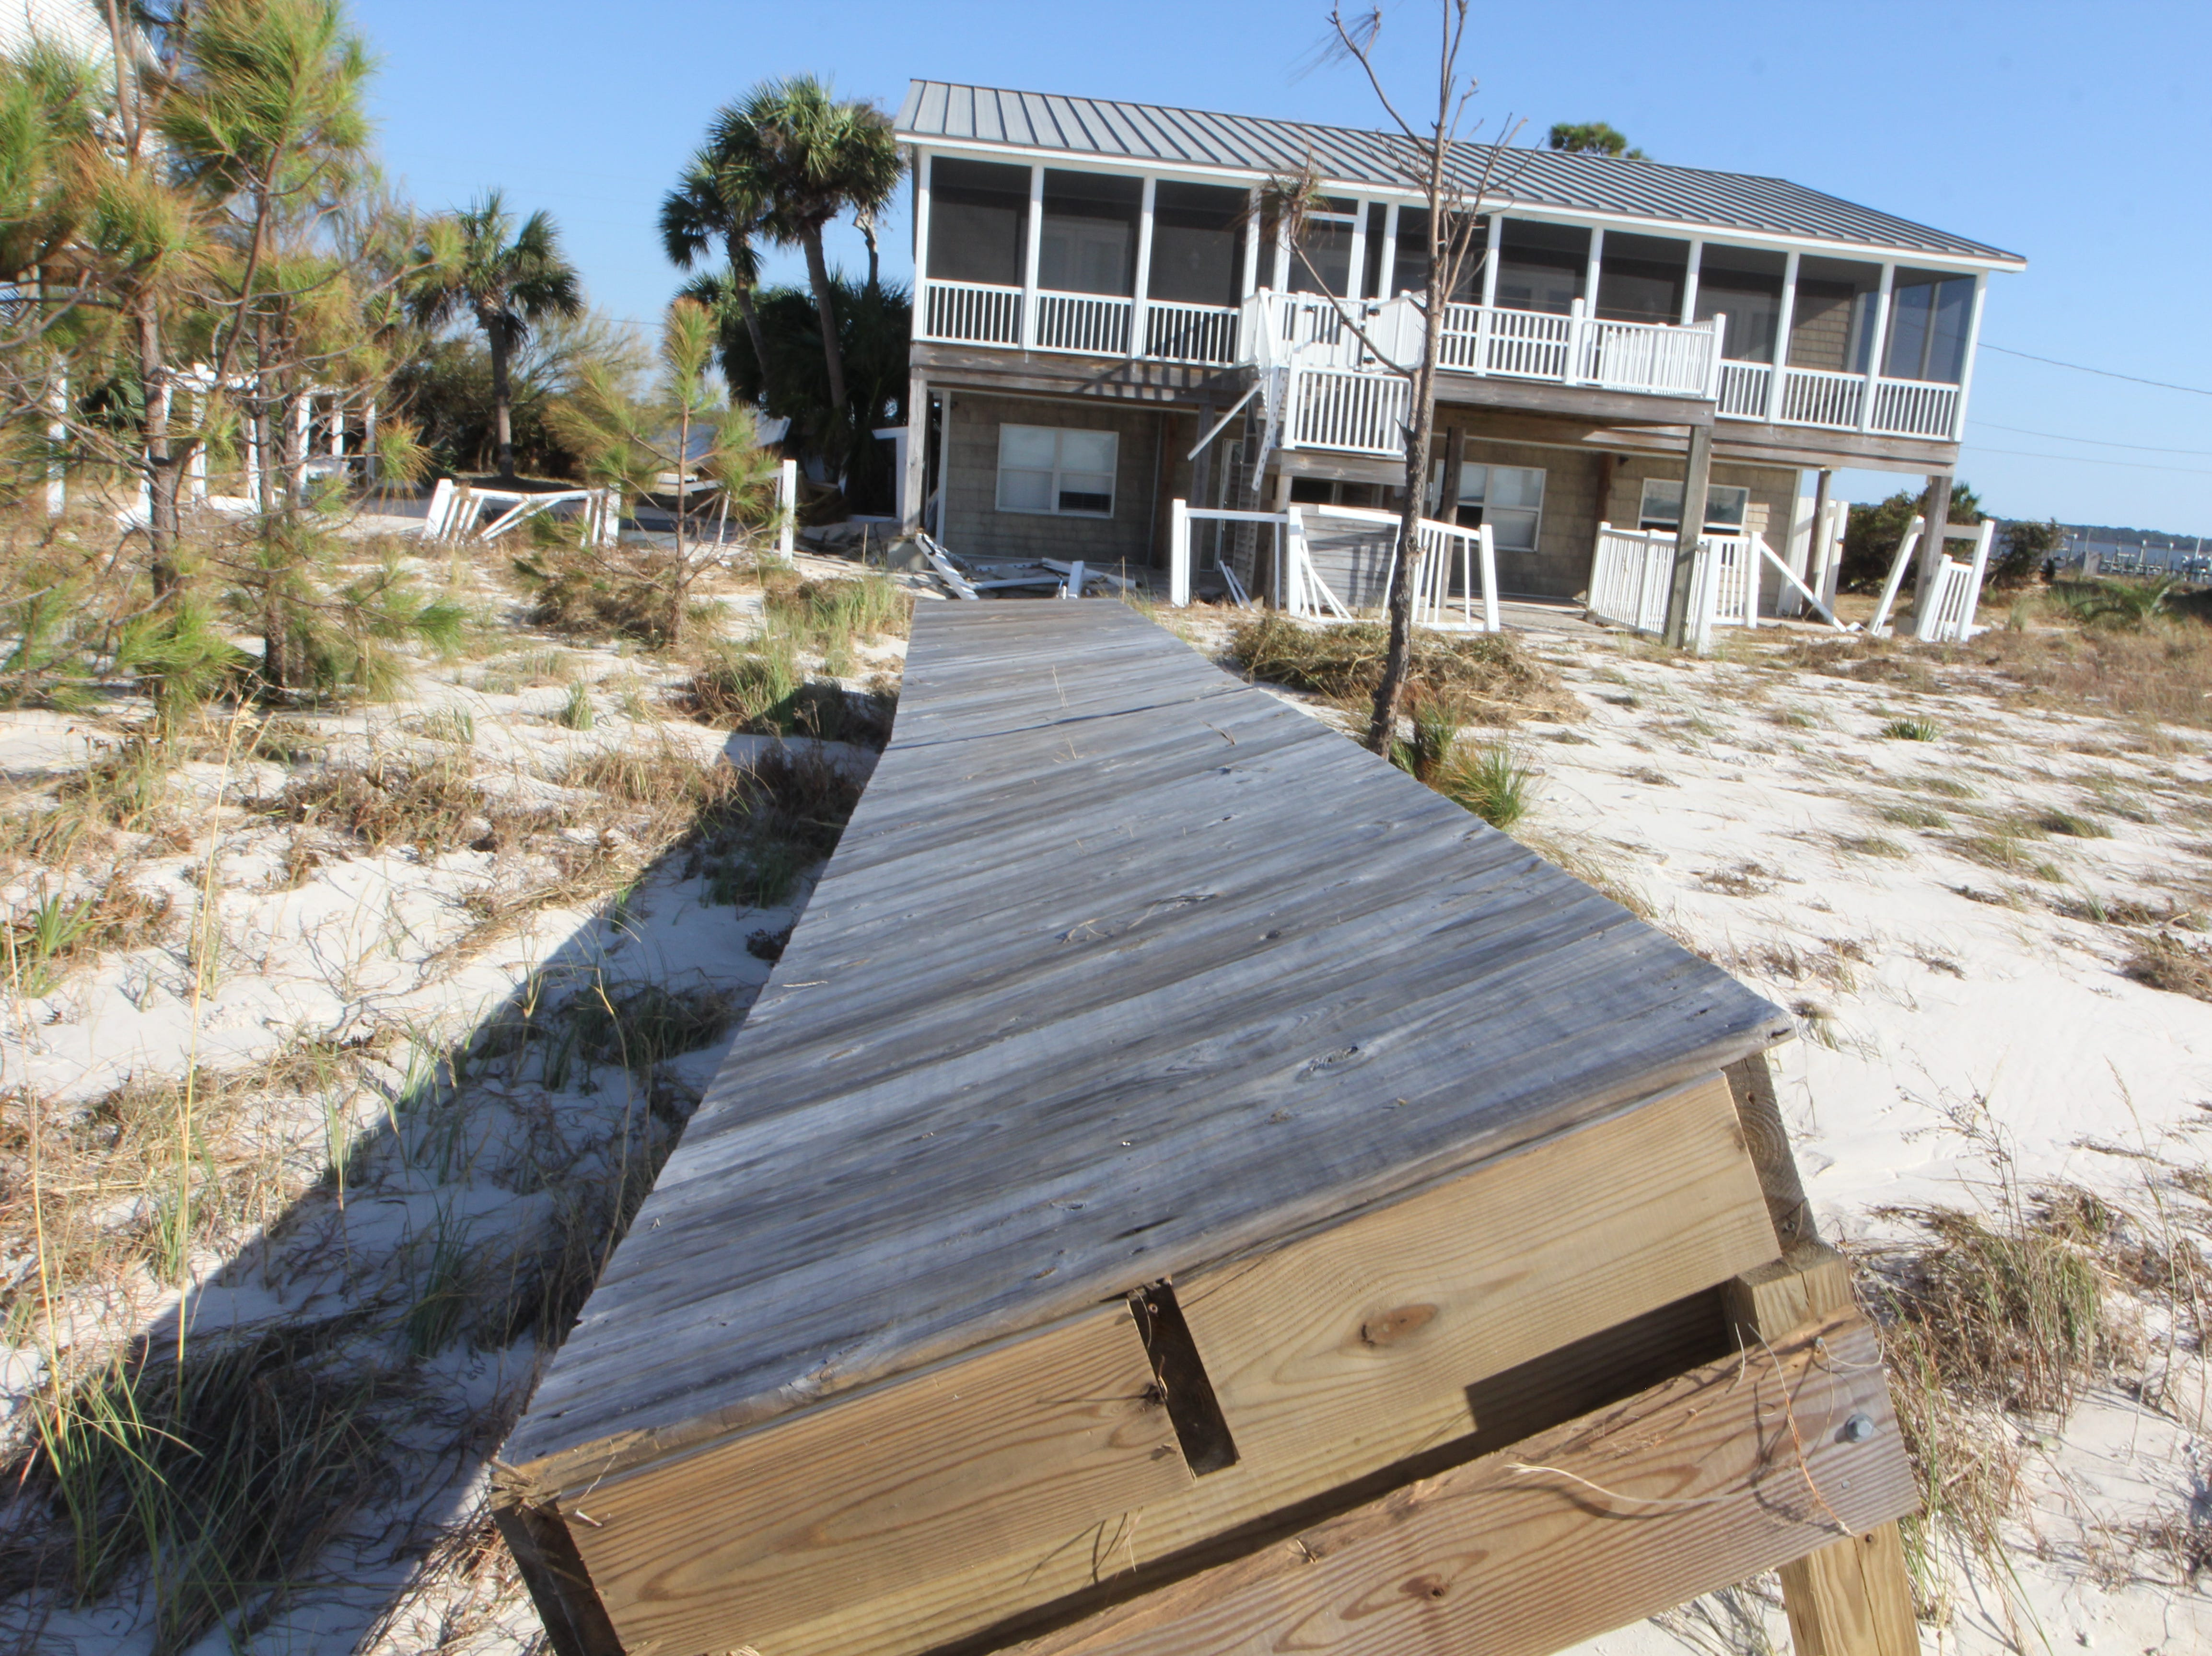 A dock that once led to a house on Alligator Point sits in shambles after Hurricane Michael.